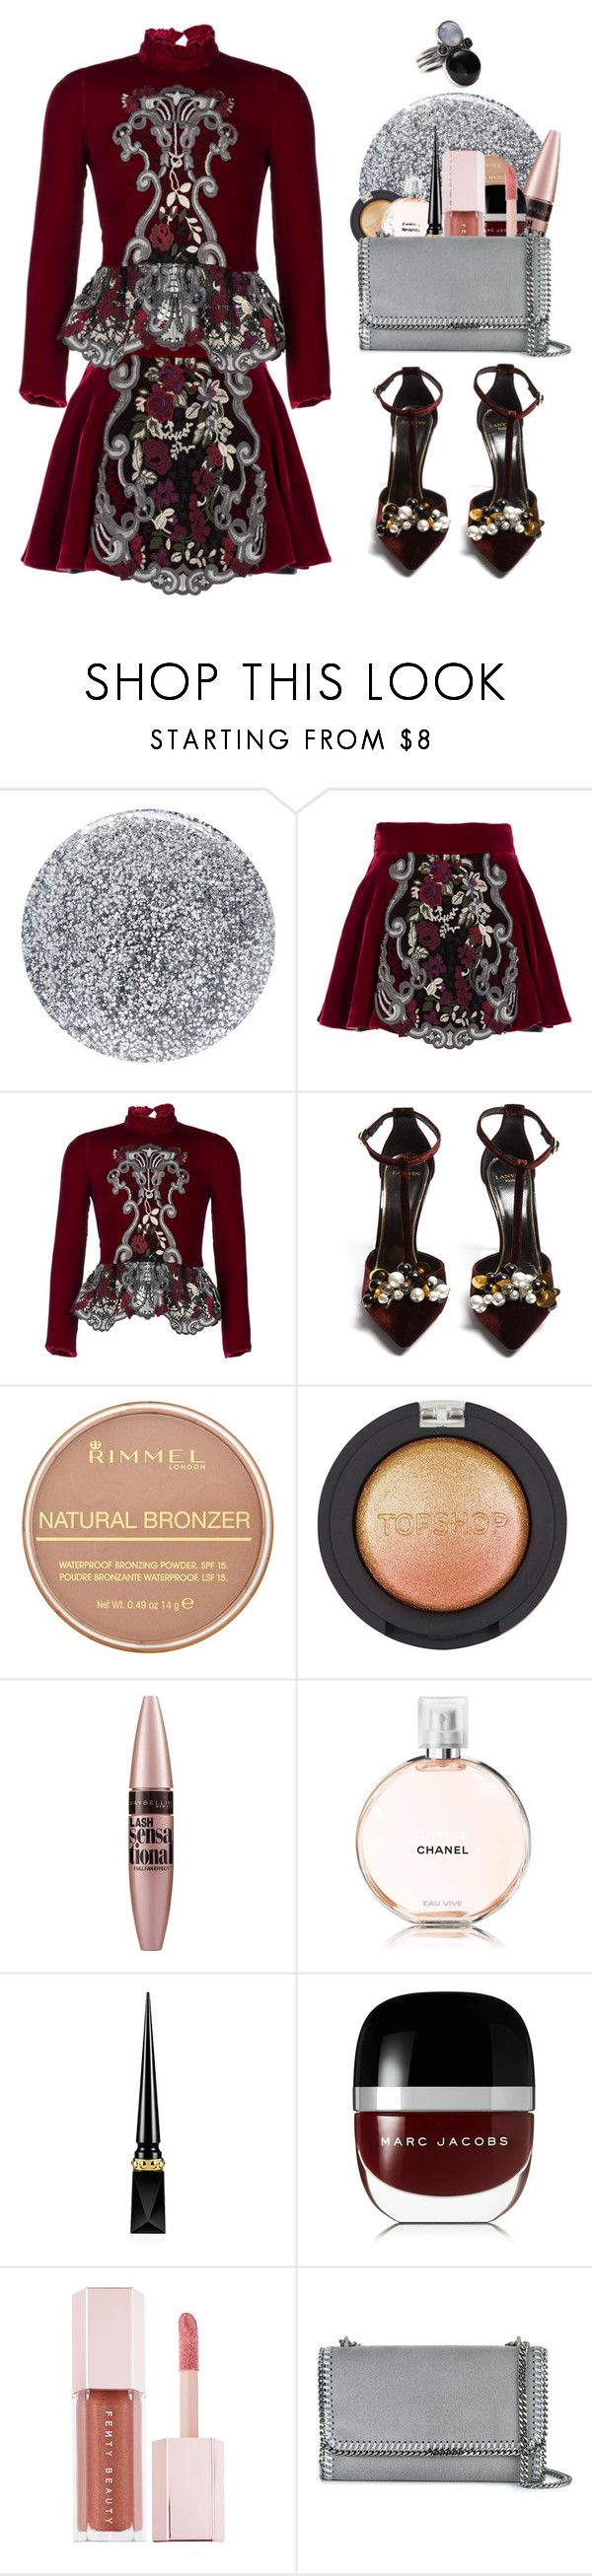 """✨стиль✨"" by taaniia ❤ liked on Polyvore featuring Smith & Cult, Ezgi Cinar, Lanvin, Rimmel, Topshop, Maybelline, Chanel, Christian Louboutin, Marc Jacobs and Puma"